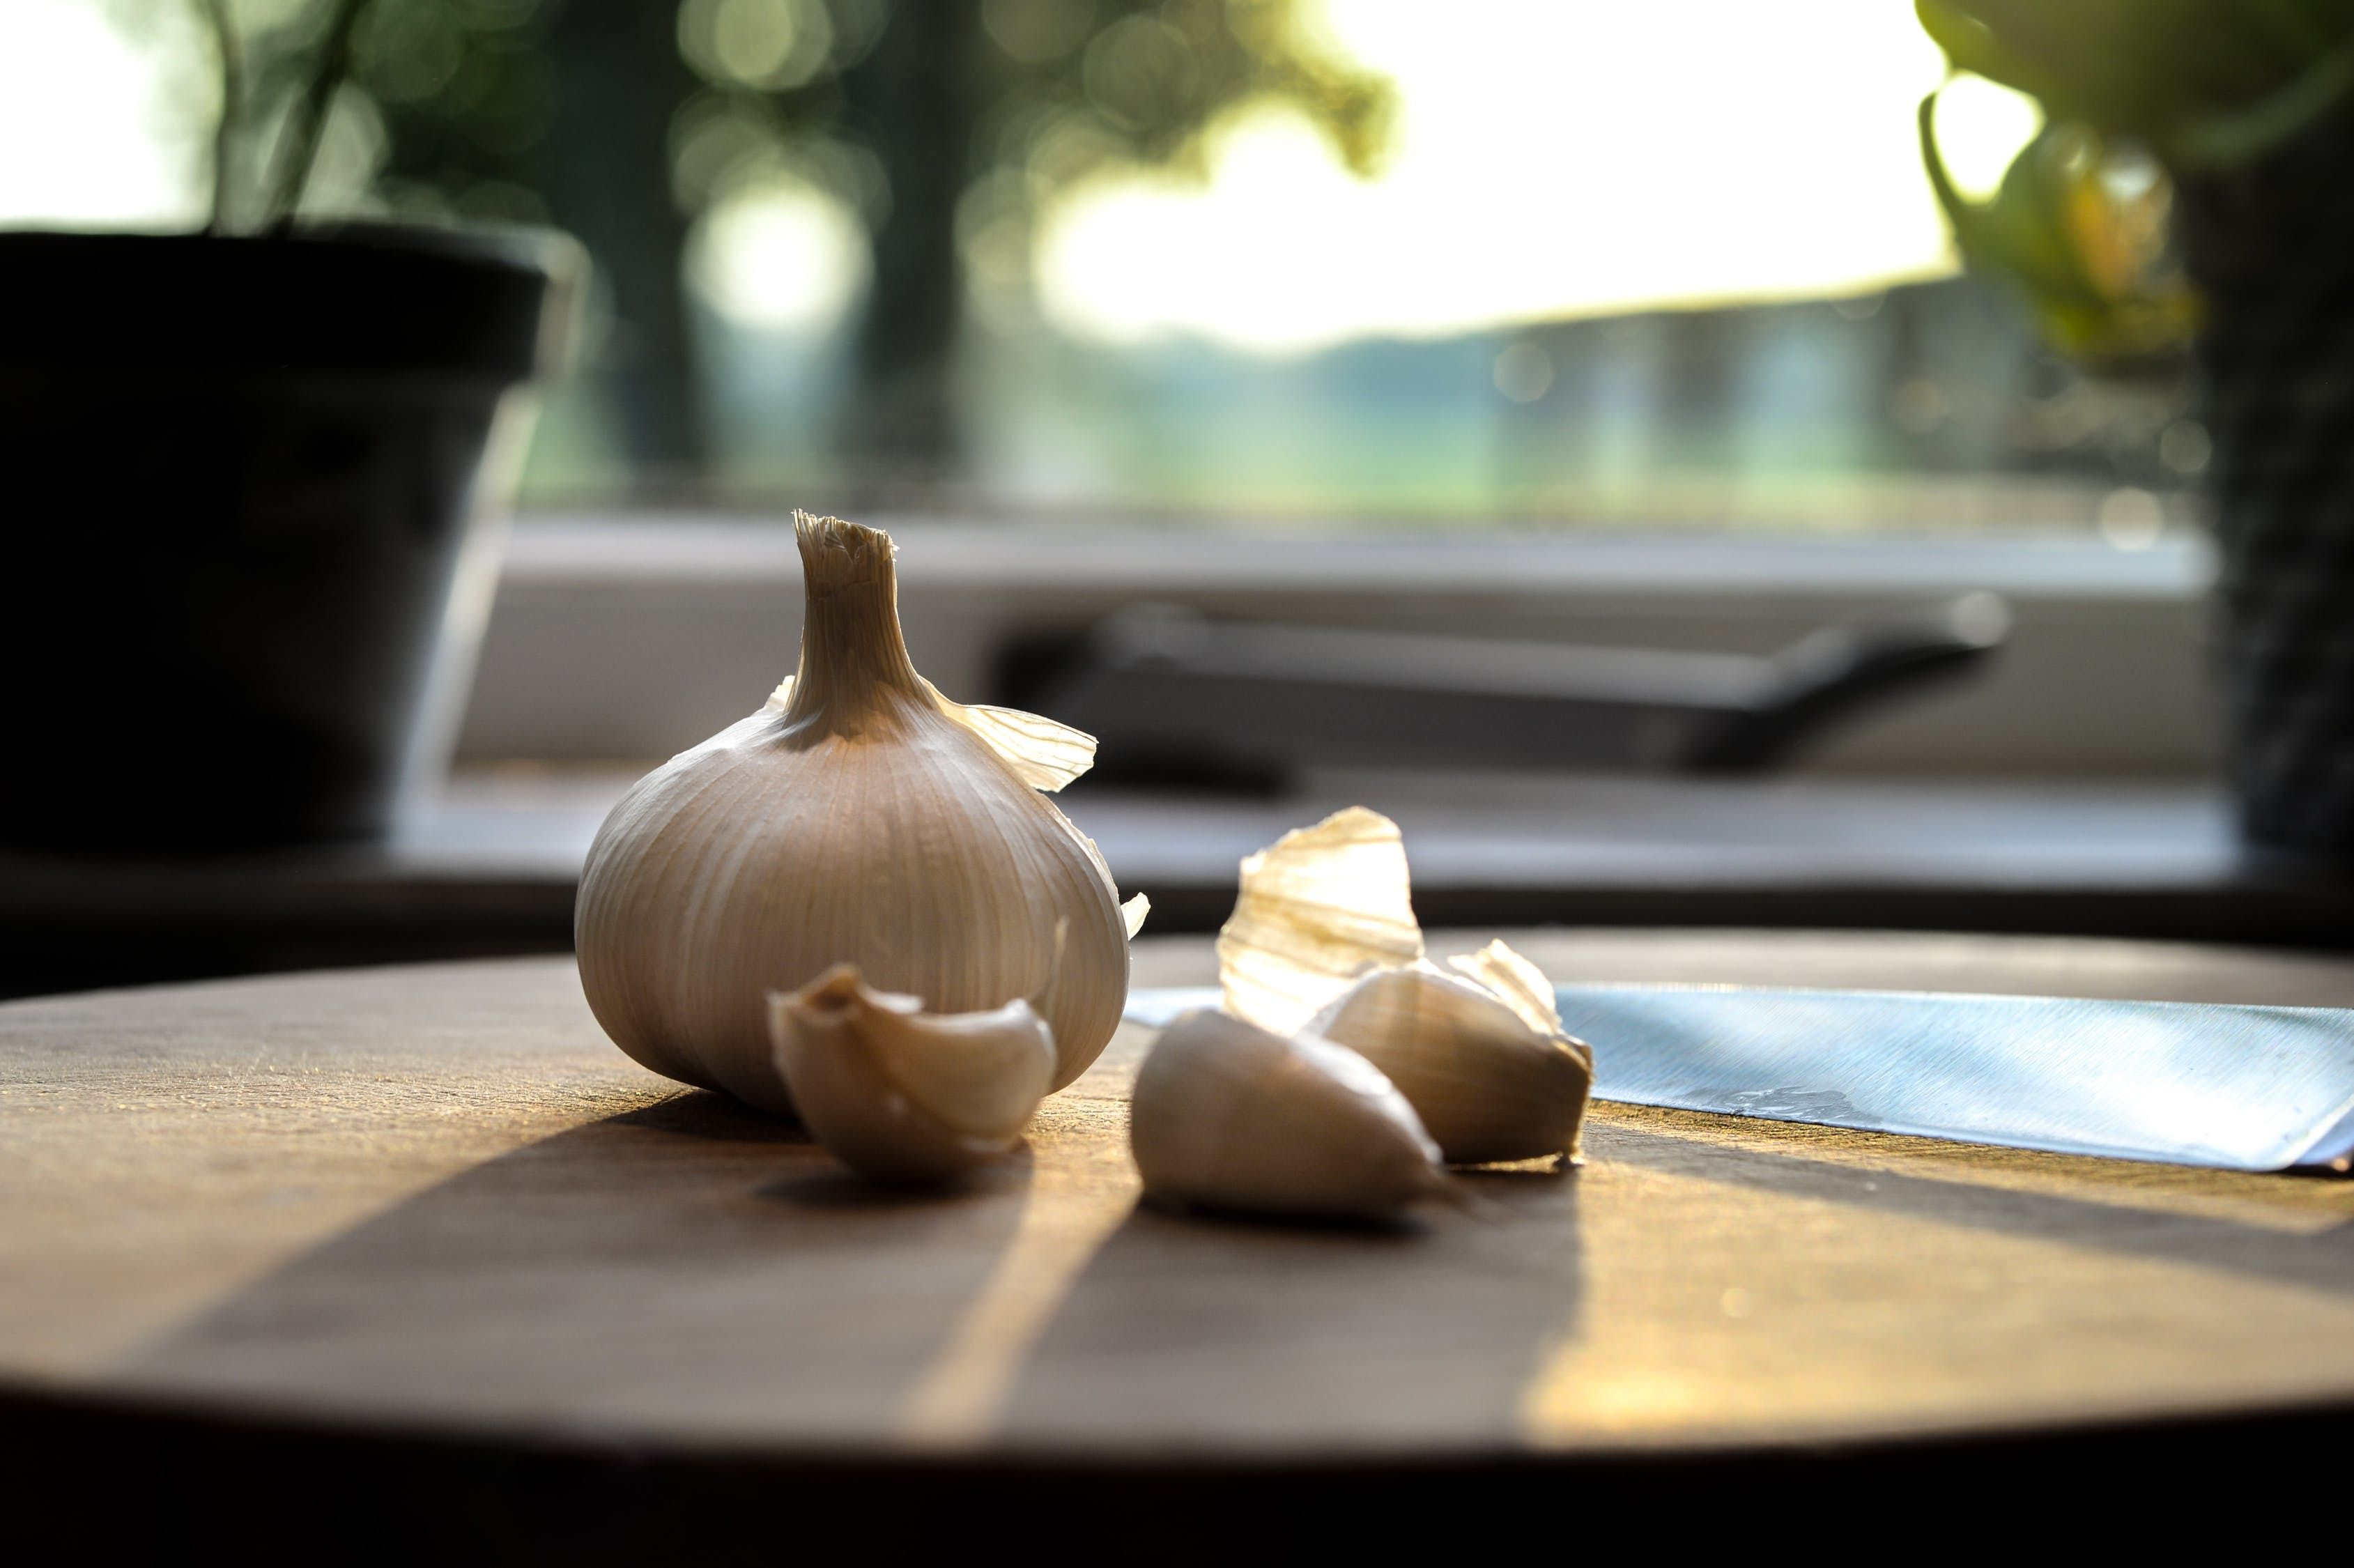 Garlic is another source of prebiotics that promotes the growth of beneficial gut bacteria.